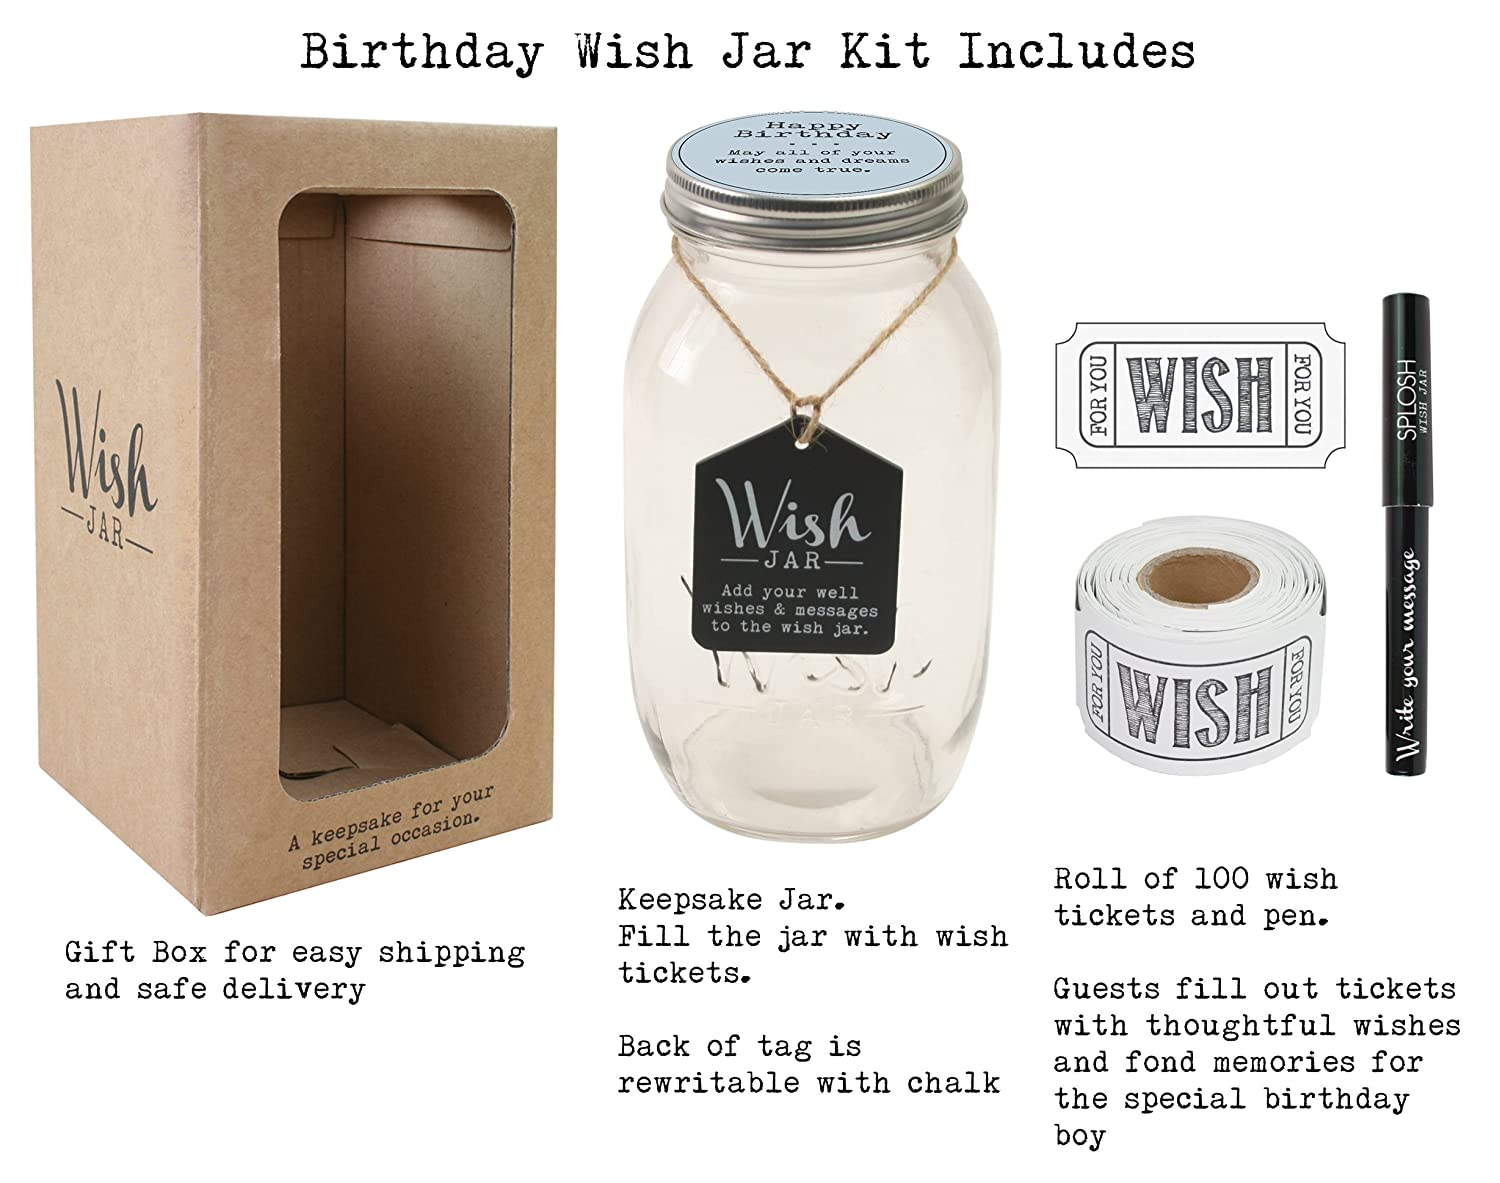 Dad Top Shelf Happy Birthday Wish Jar Unique Gift Ideas For Mom Sister And Brother Memorable Gifts For Men And Women Kit Comes With 100 Tickets And Decorative Lid